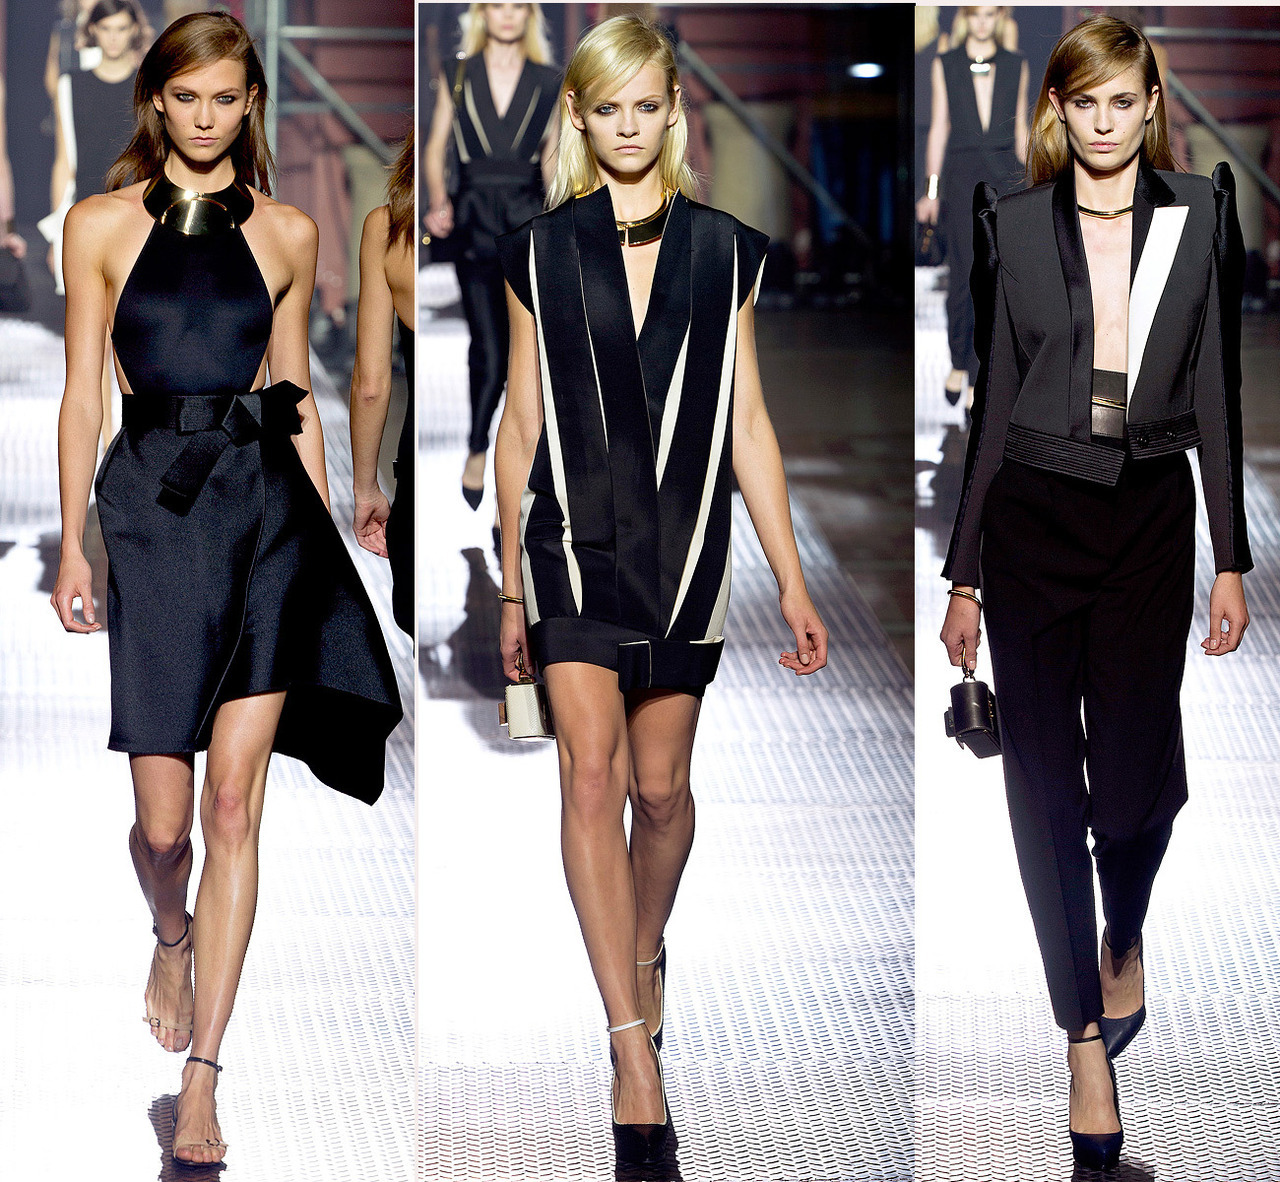 Lanvin S/S 2013 #PFW | The more Alber Elbaz literally spreads the more in voguish tune his evening looks are.